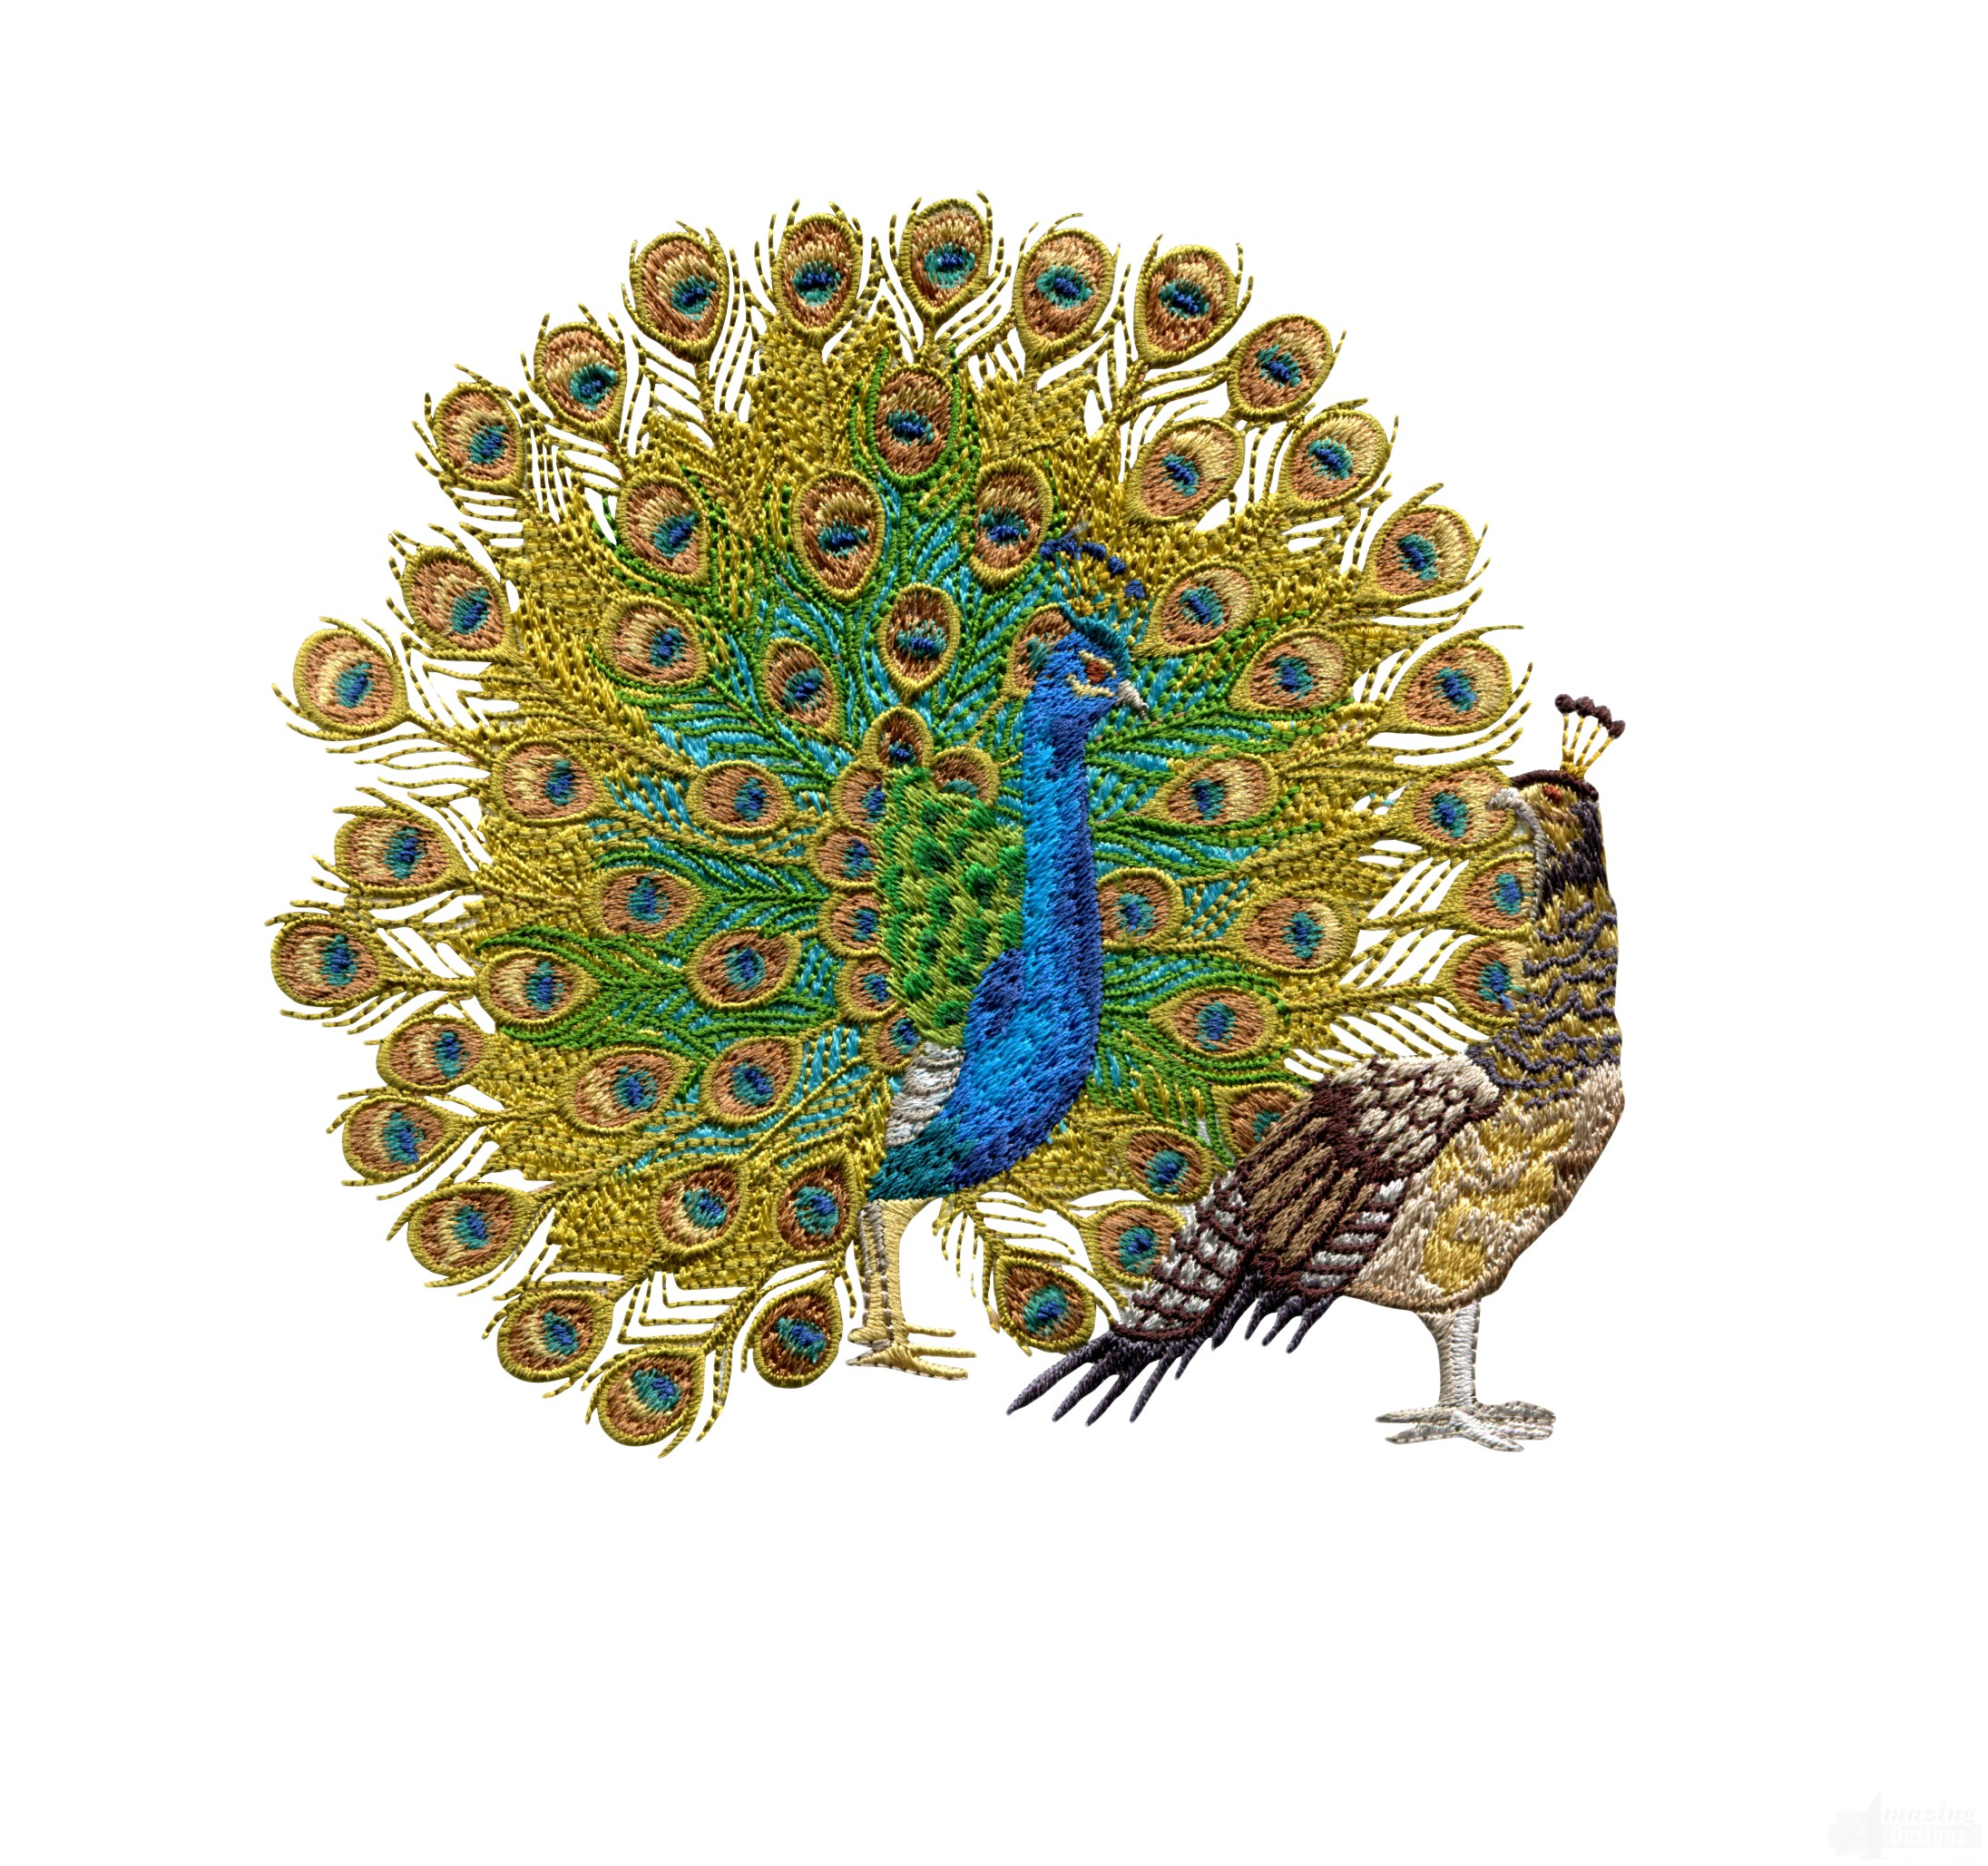 Peacock Embroidery Designs Hand Embroidery | Www.imgkid.com - The Image Kid Has It!